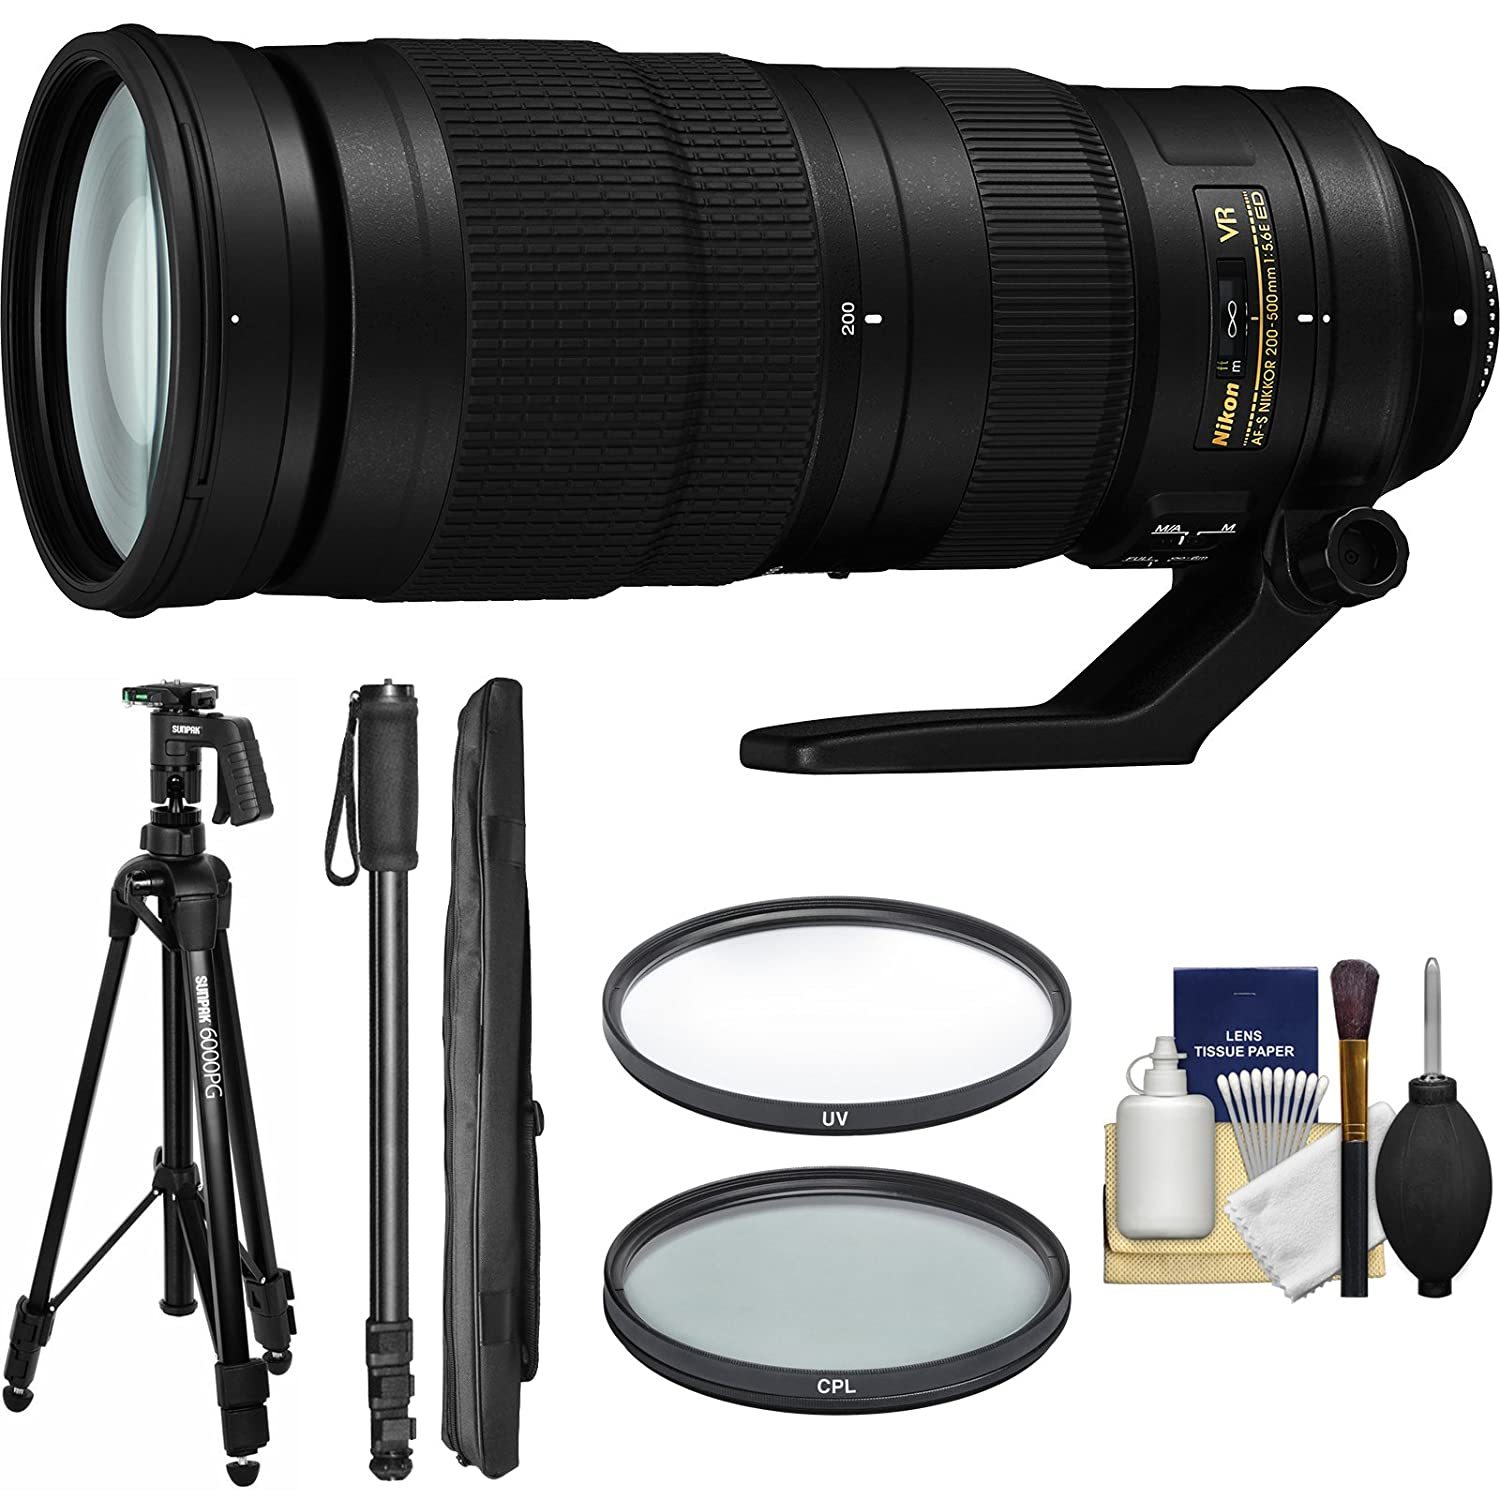 500mm f//8 PRO Super Telephoto Lens for Canon EOS Kiss Digital Rebel T3i 600D 7D